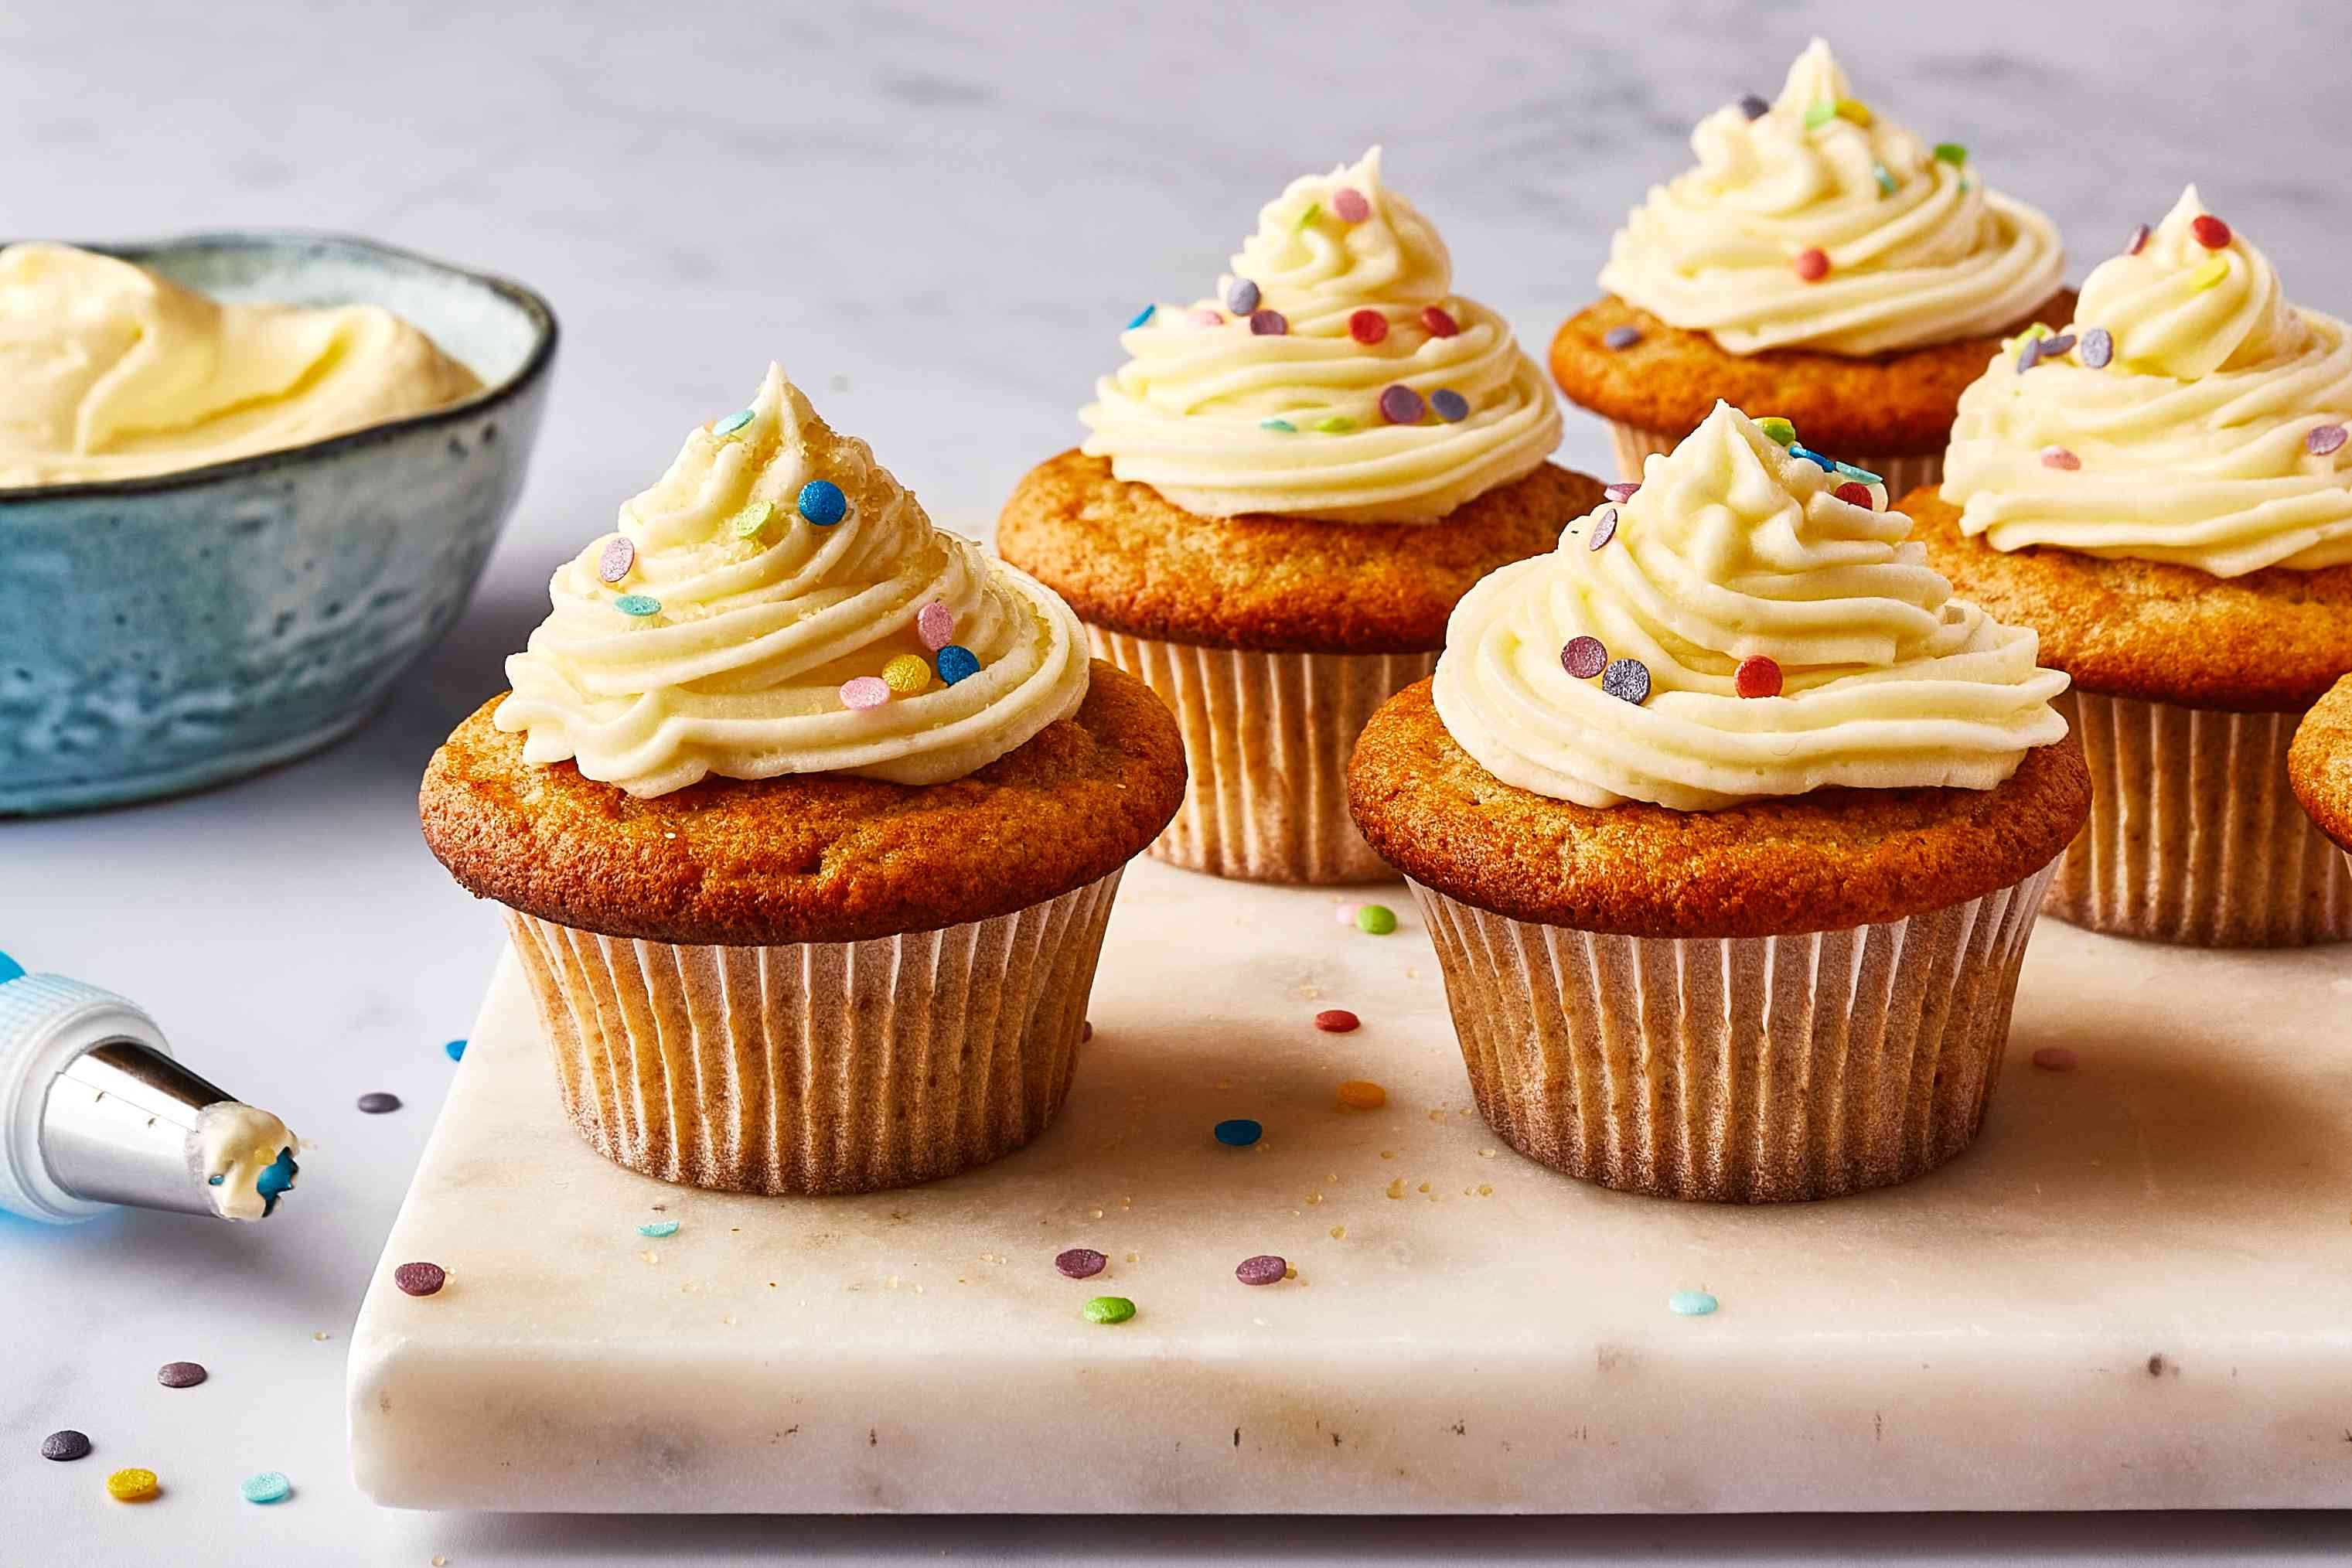 Cupcakes frosted with vegan cream cheese frosting